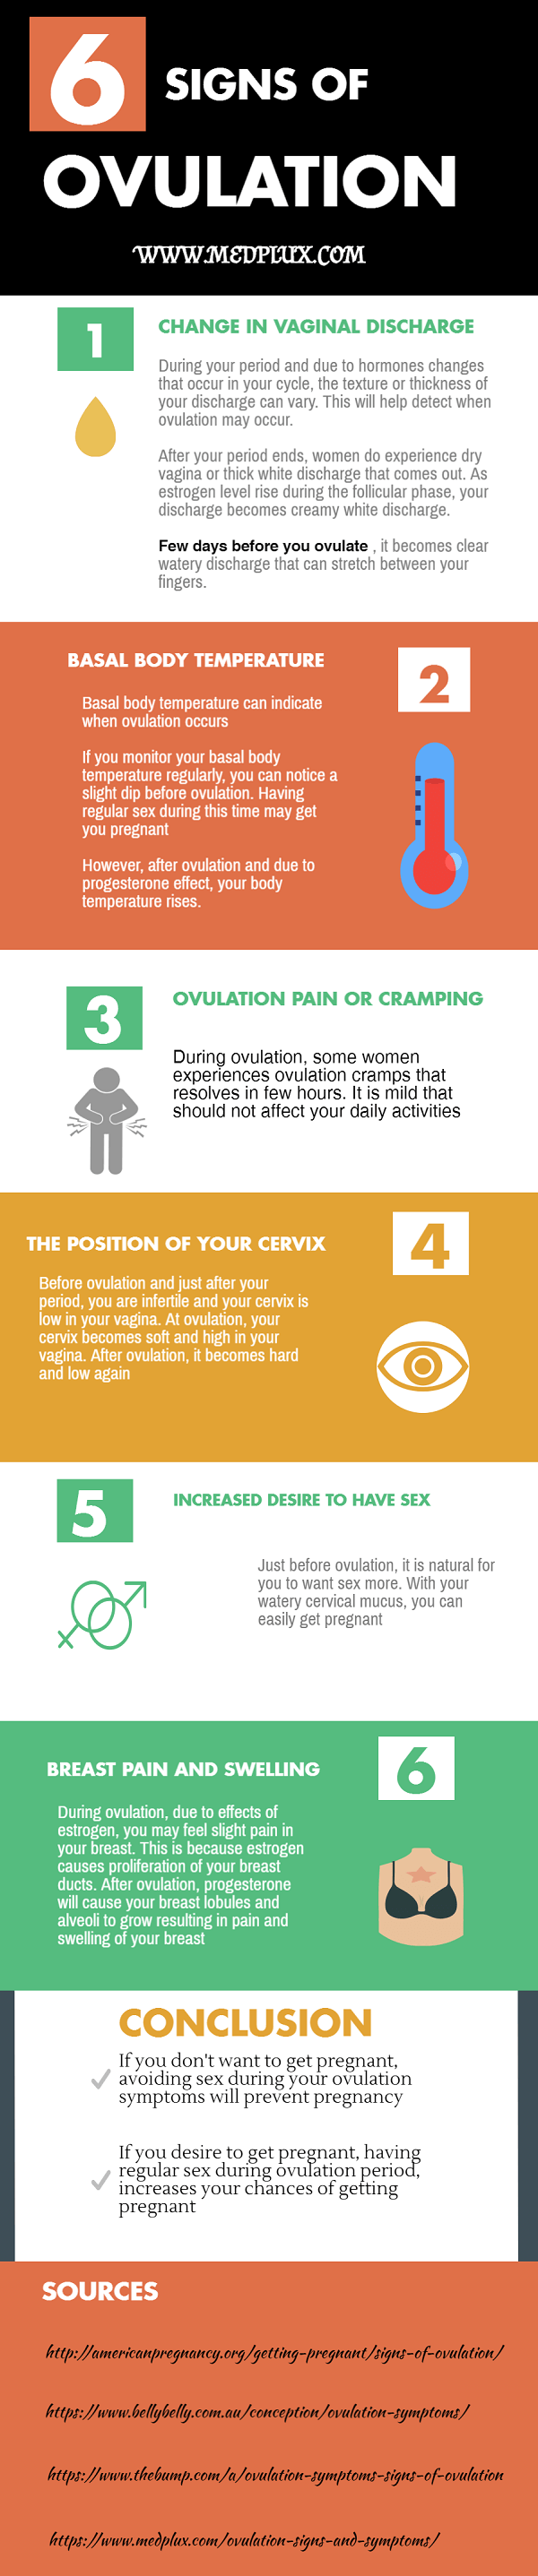 symptoms and signs of ovulation infographic